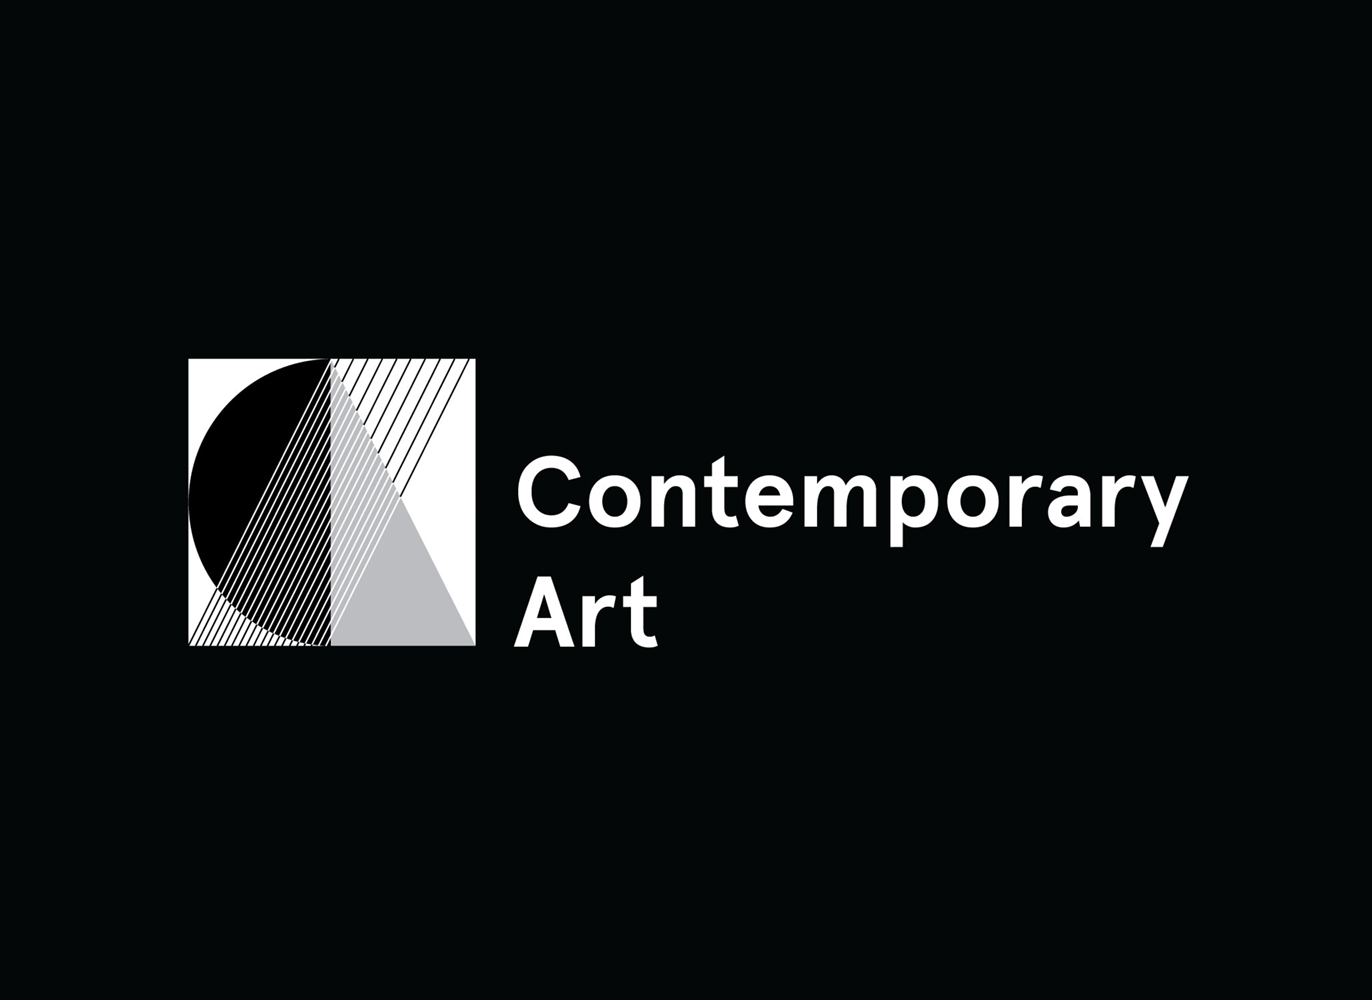 Cover image: Contemporary Art